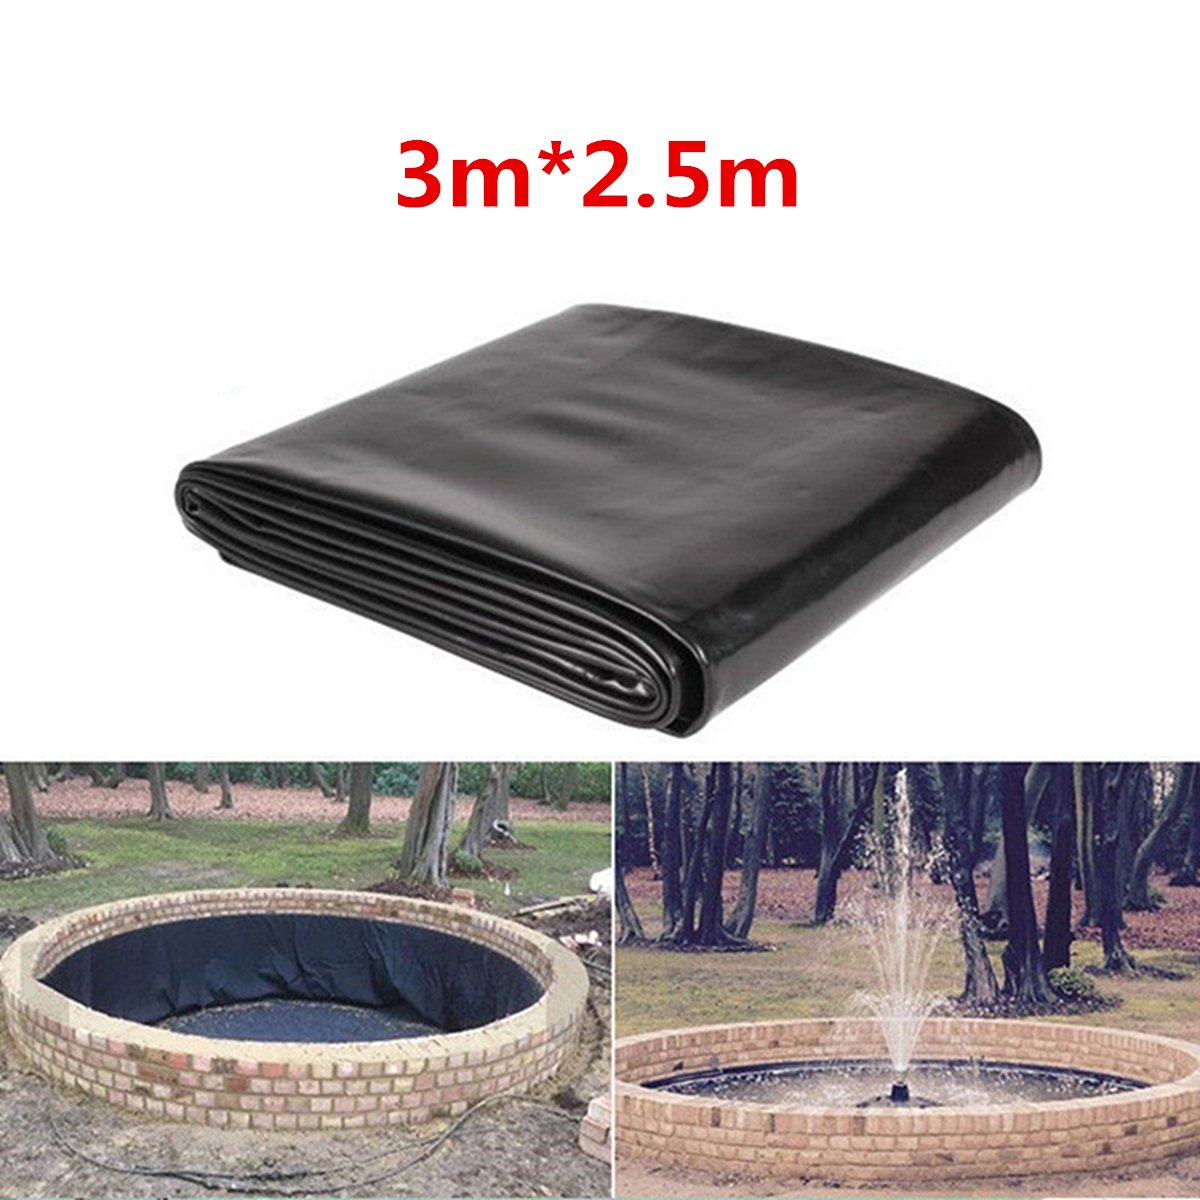 Pond Liners KINGSO Pond Skins Waterfall and Water Features Black 118inch 98inch